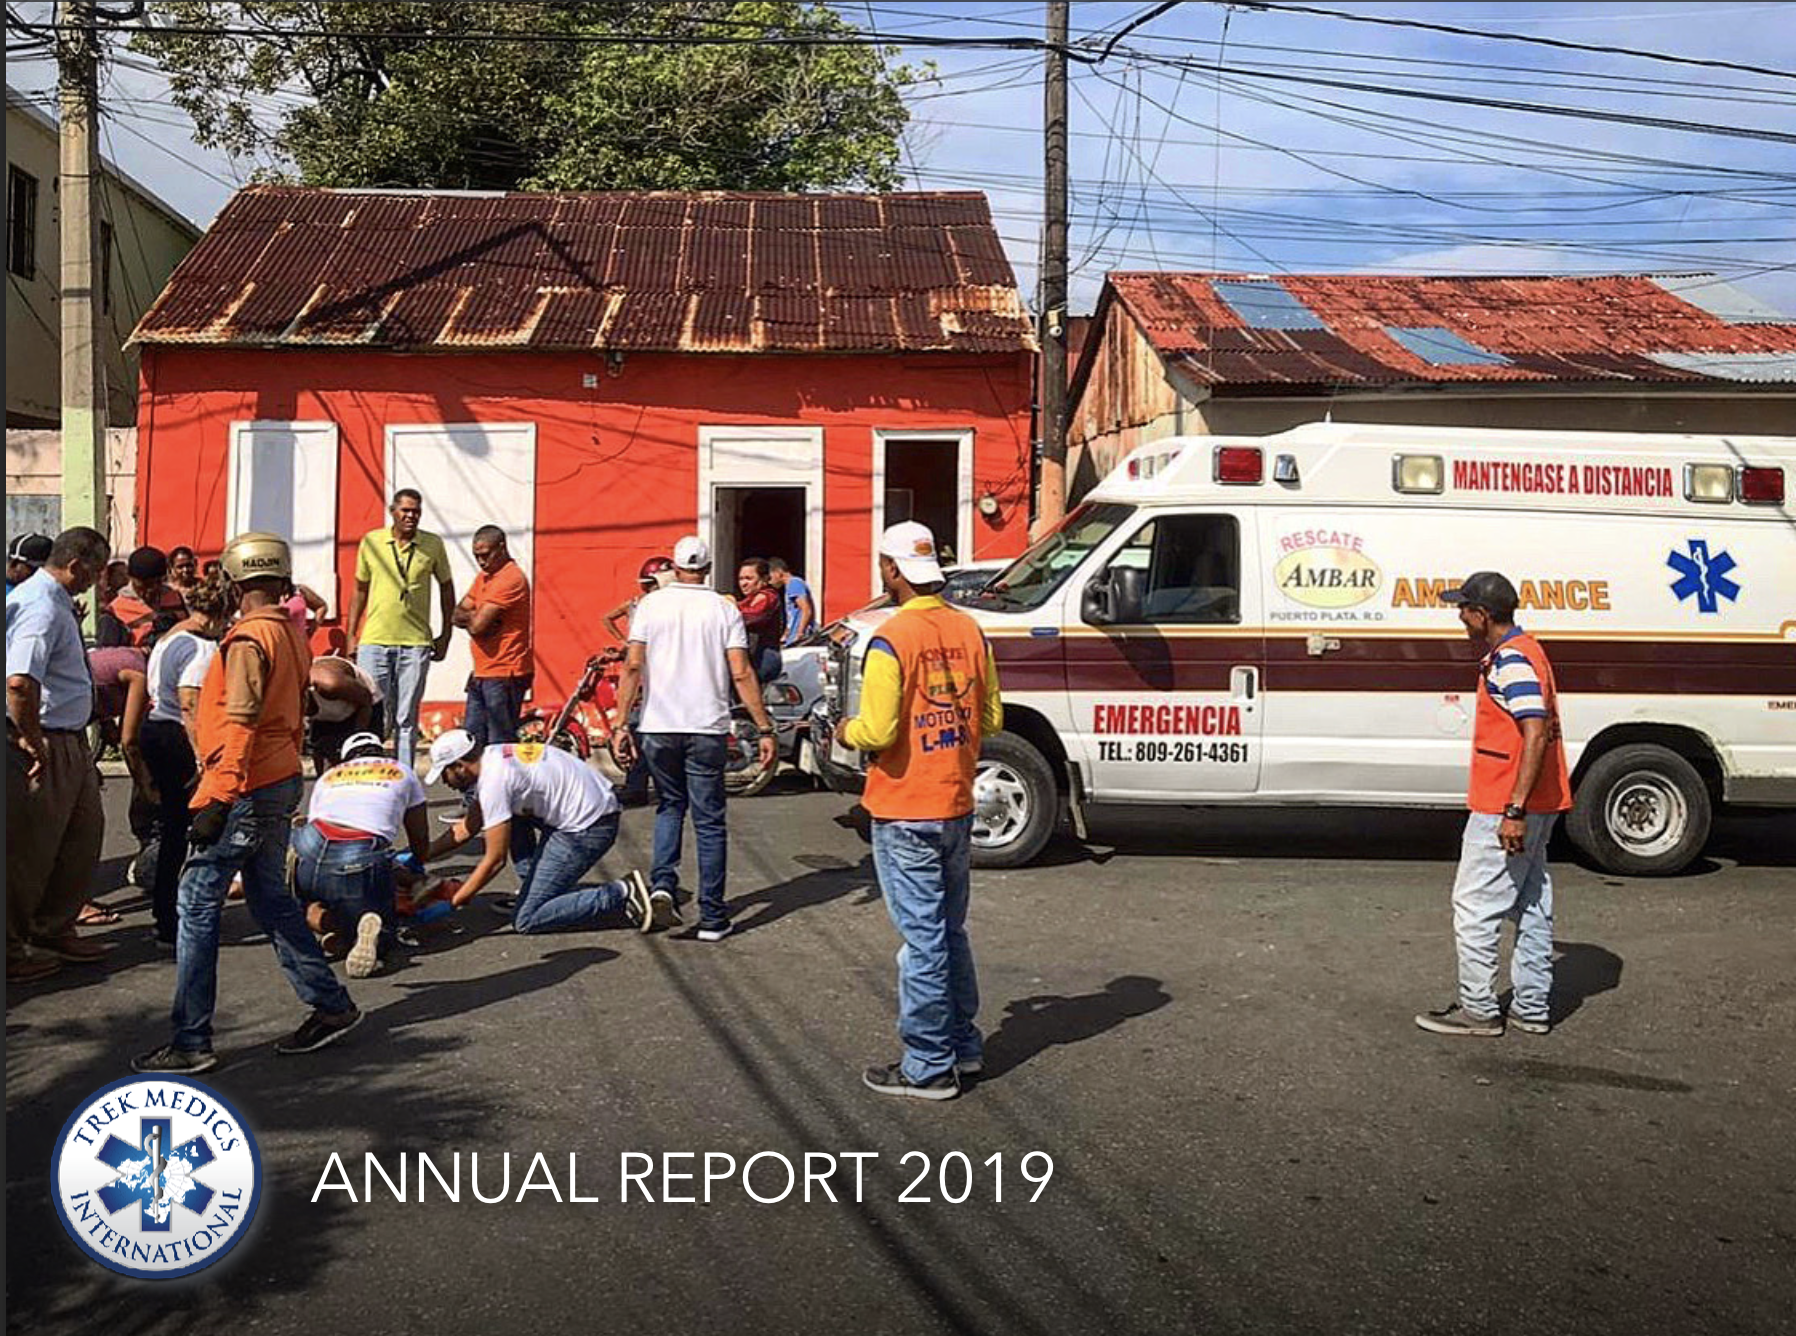 trek-medics-2019-annual-report-cover